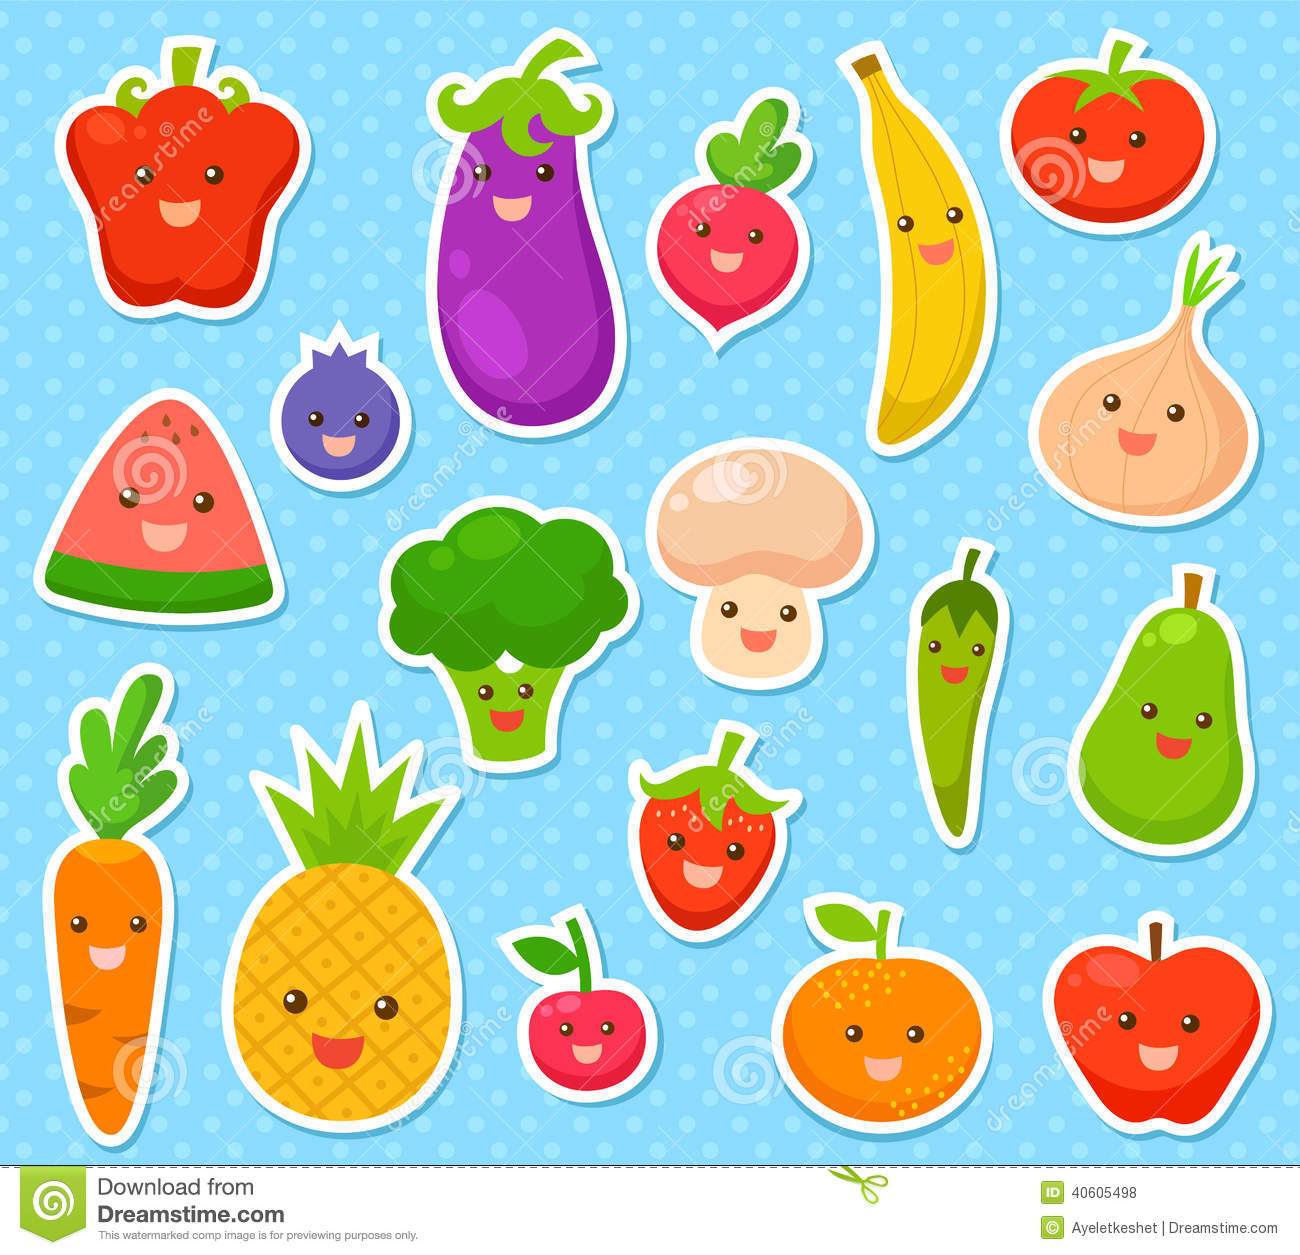 Wall Stickers How To Apply Frutas E Verdura Ilustra 231 227 O Do Vetor Ilustra 231 227 O De